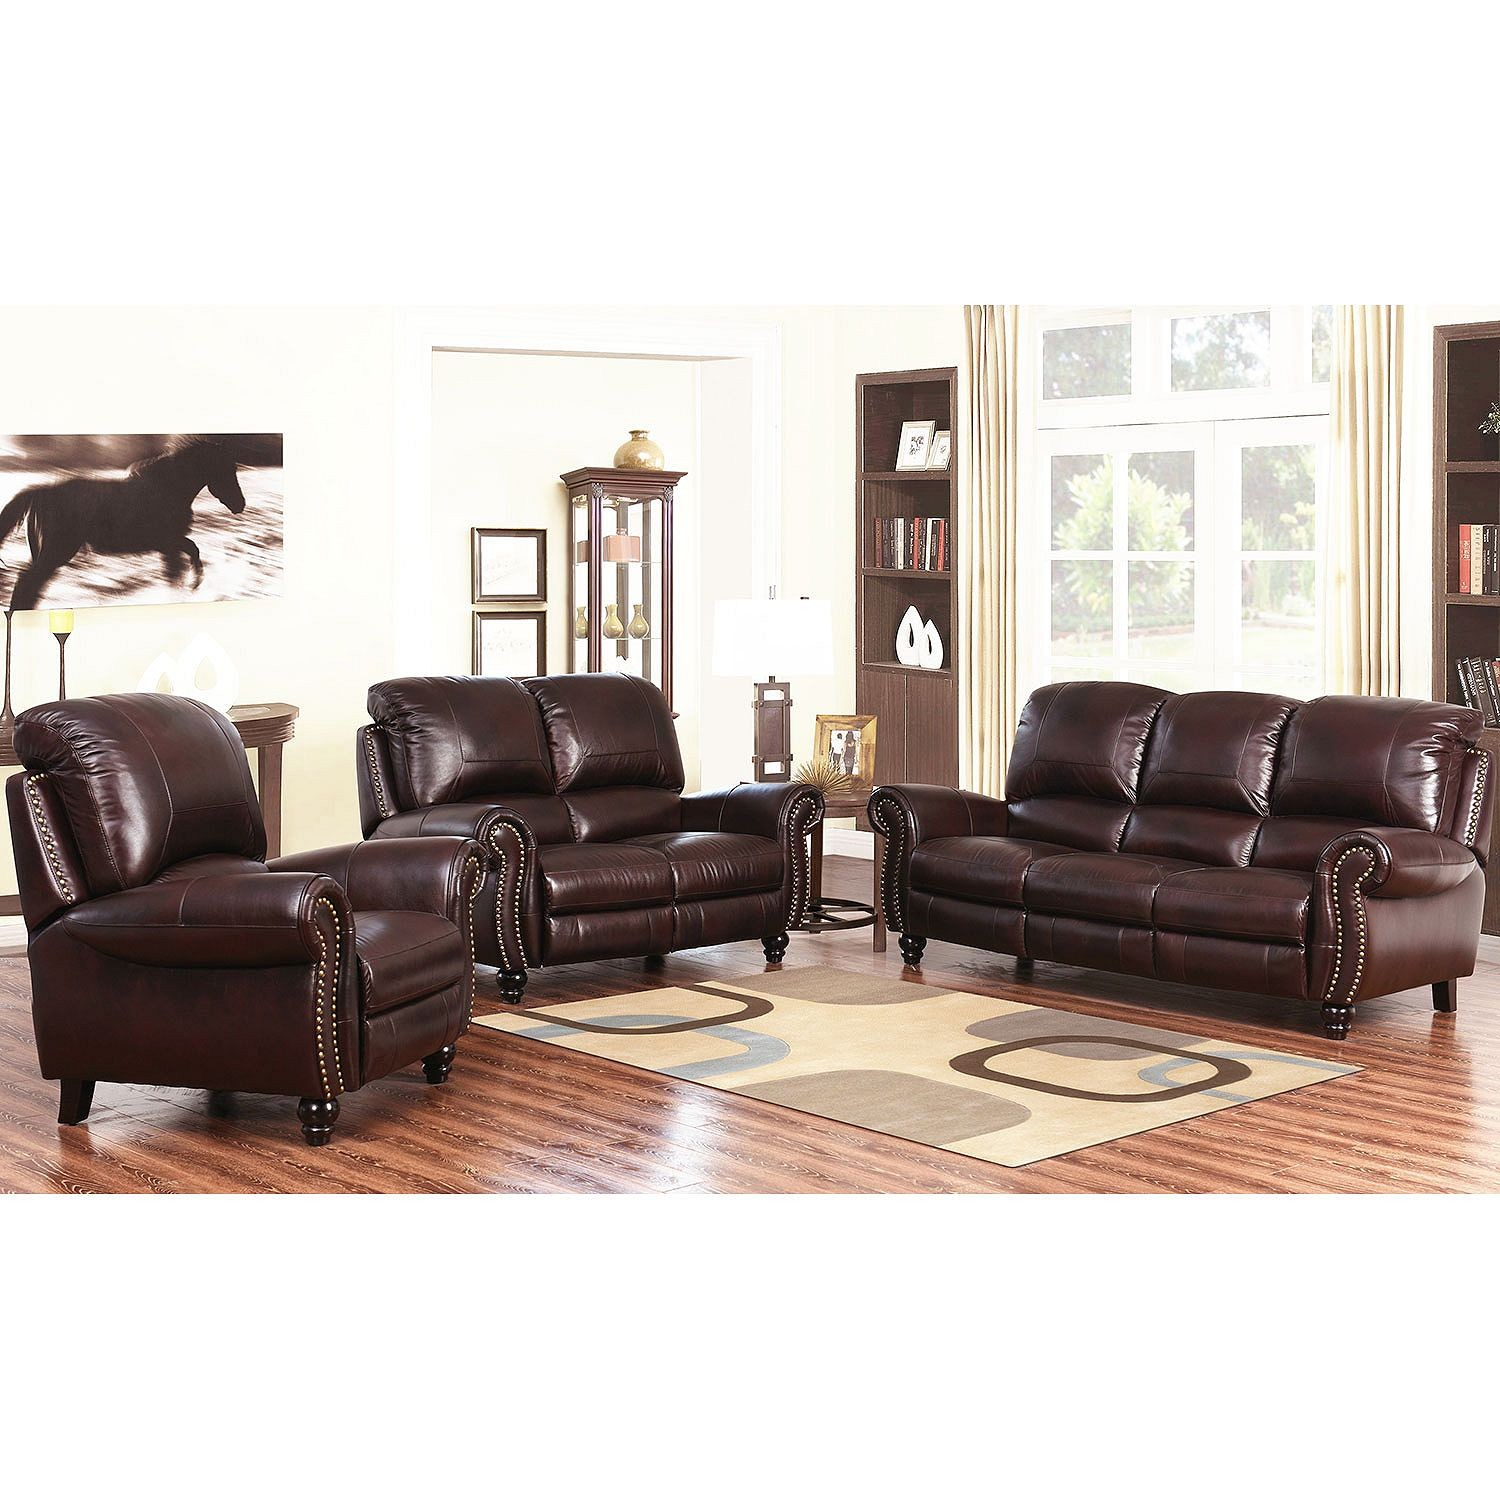 Macys Leather Sofa And Loveseat